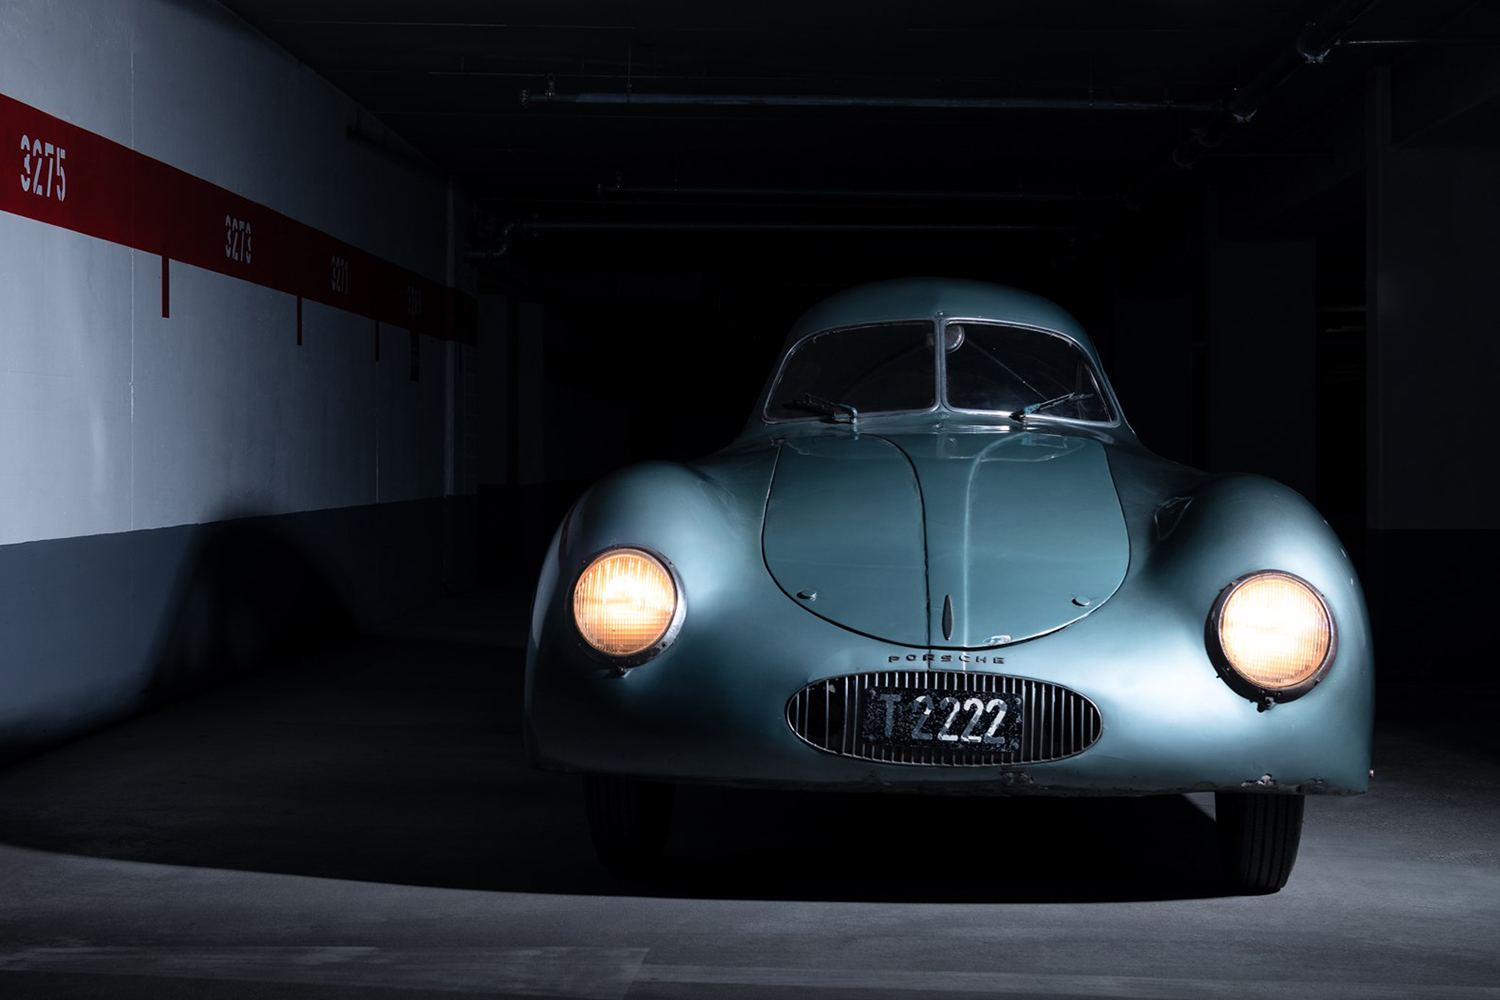 The Oldest Existing Porsche Is Headed to Auction , InsideHook